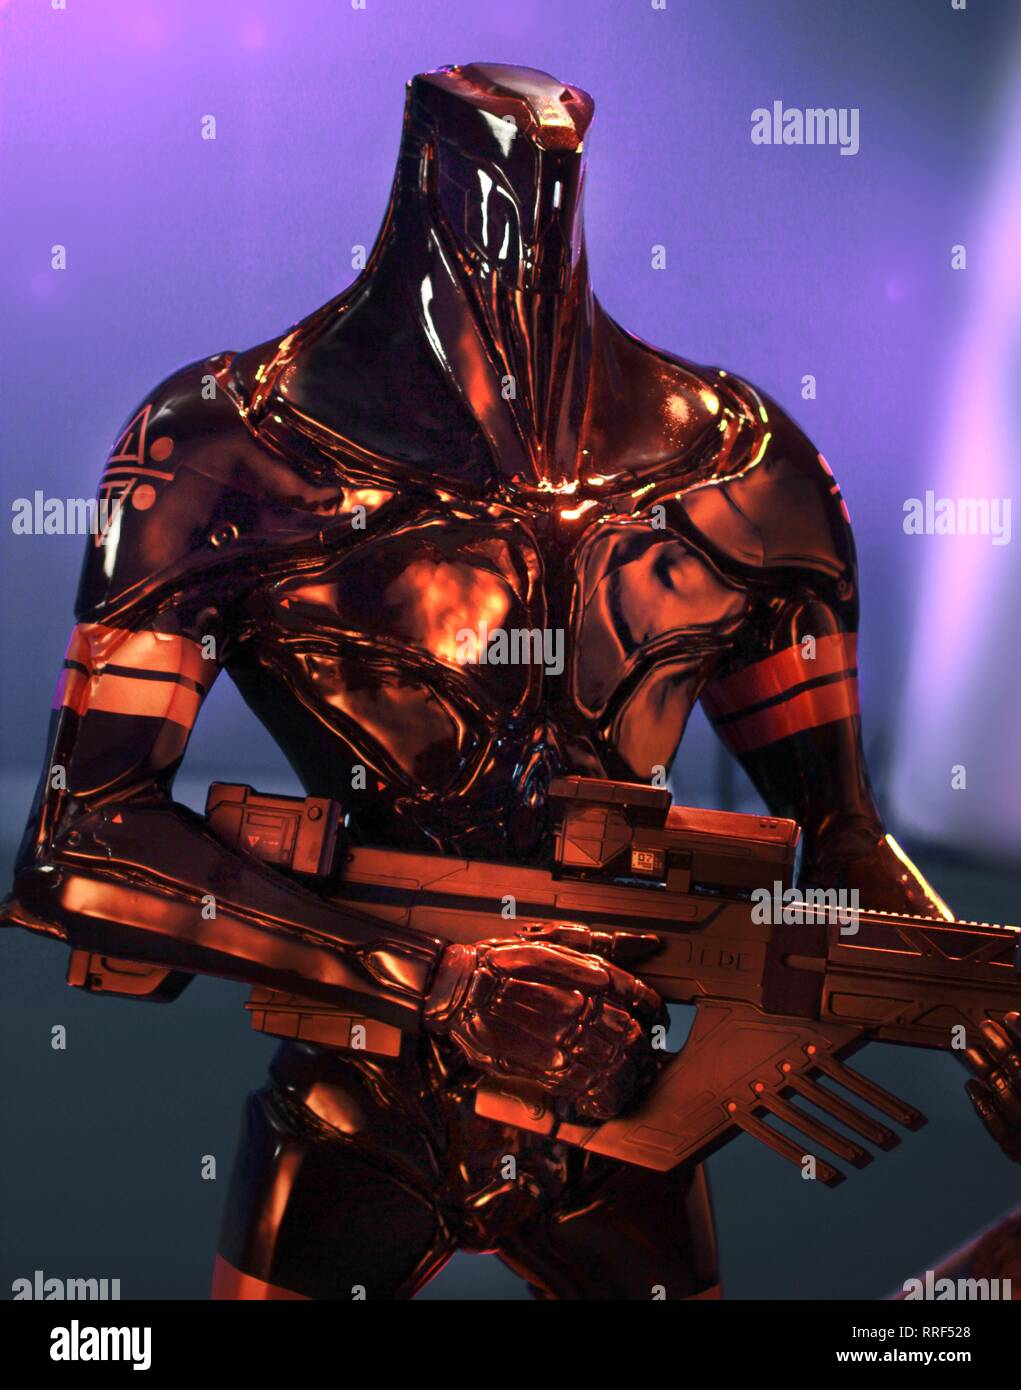 Valerian And The City Of A Thousand Planets K Tron Warrior 2017 Stock Photo Alamy